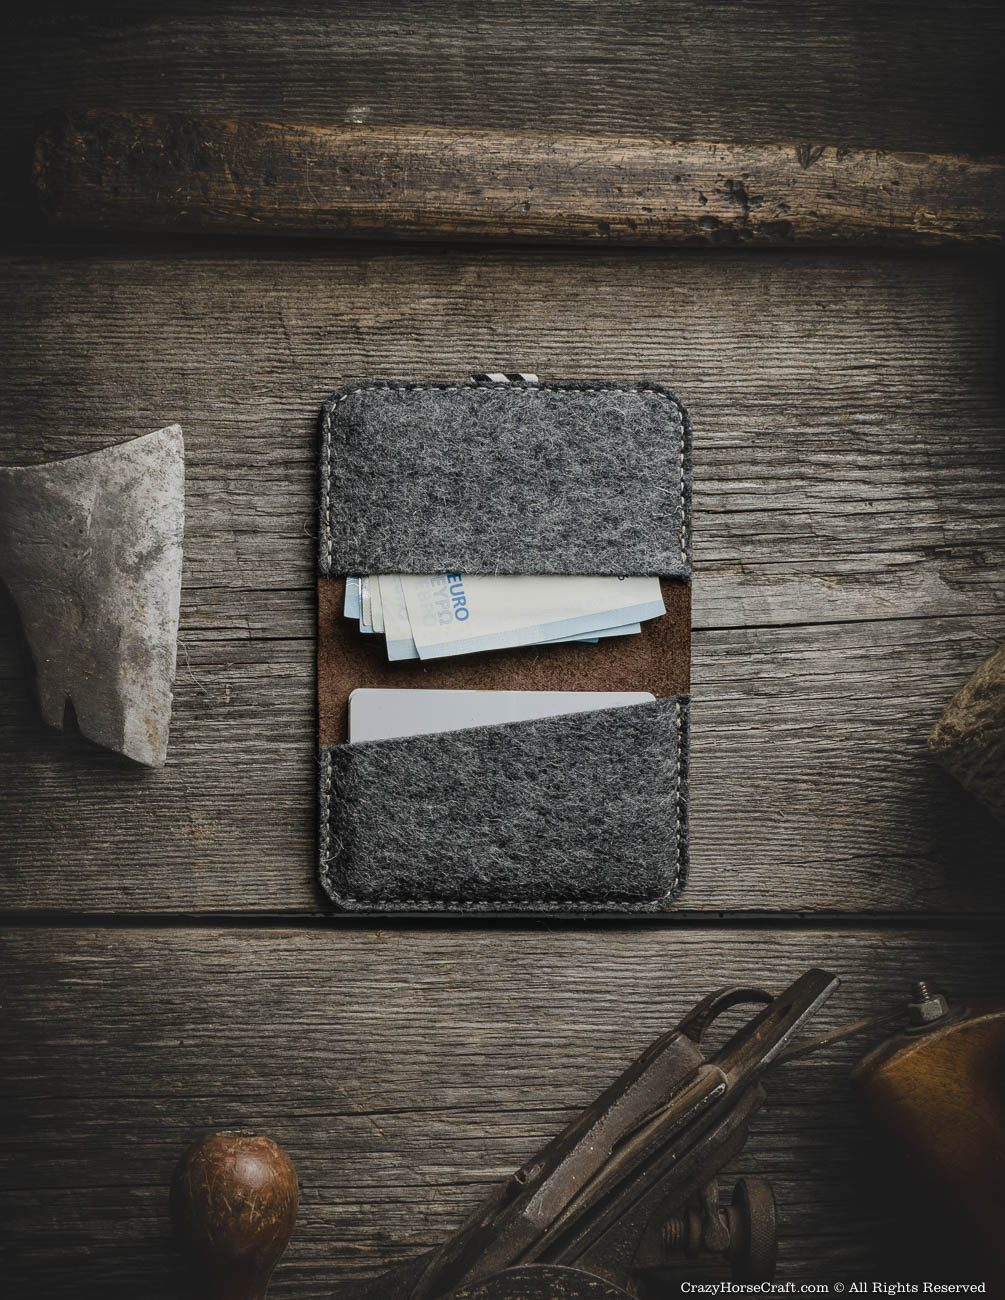 Leather minimalist vintage style wallet with card holder inside